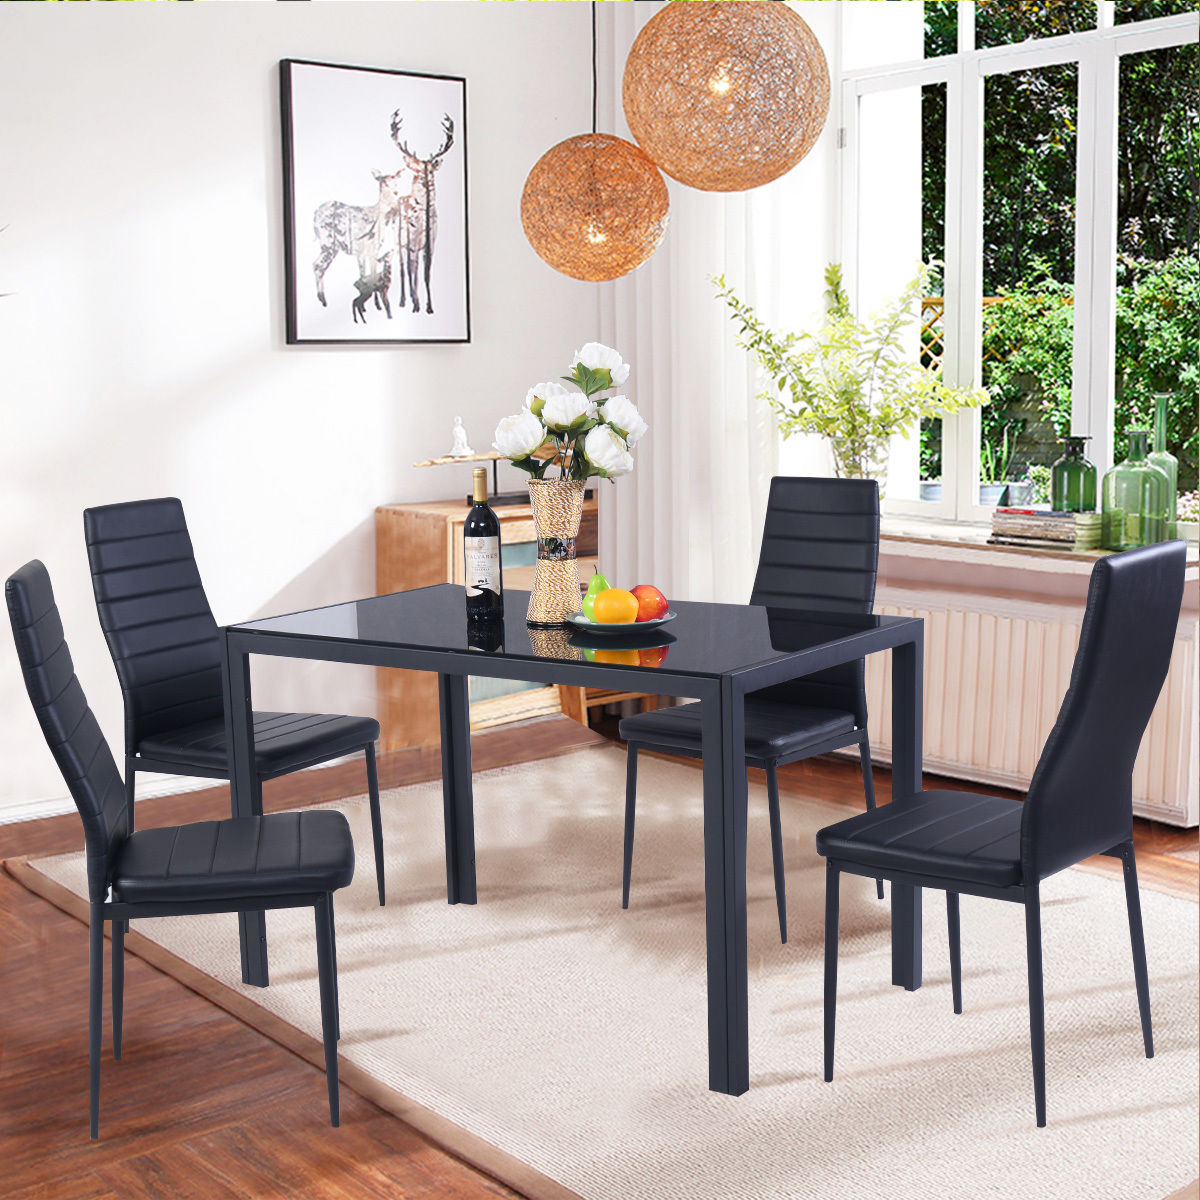 Costway 5 Piece Kitchen Dining Set Glass Metal Table and 4 Chairs Breakfast  Furniture - Traveller Location